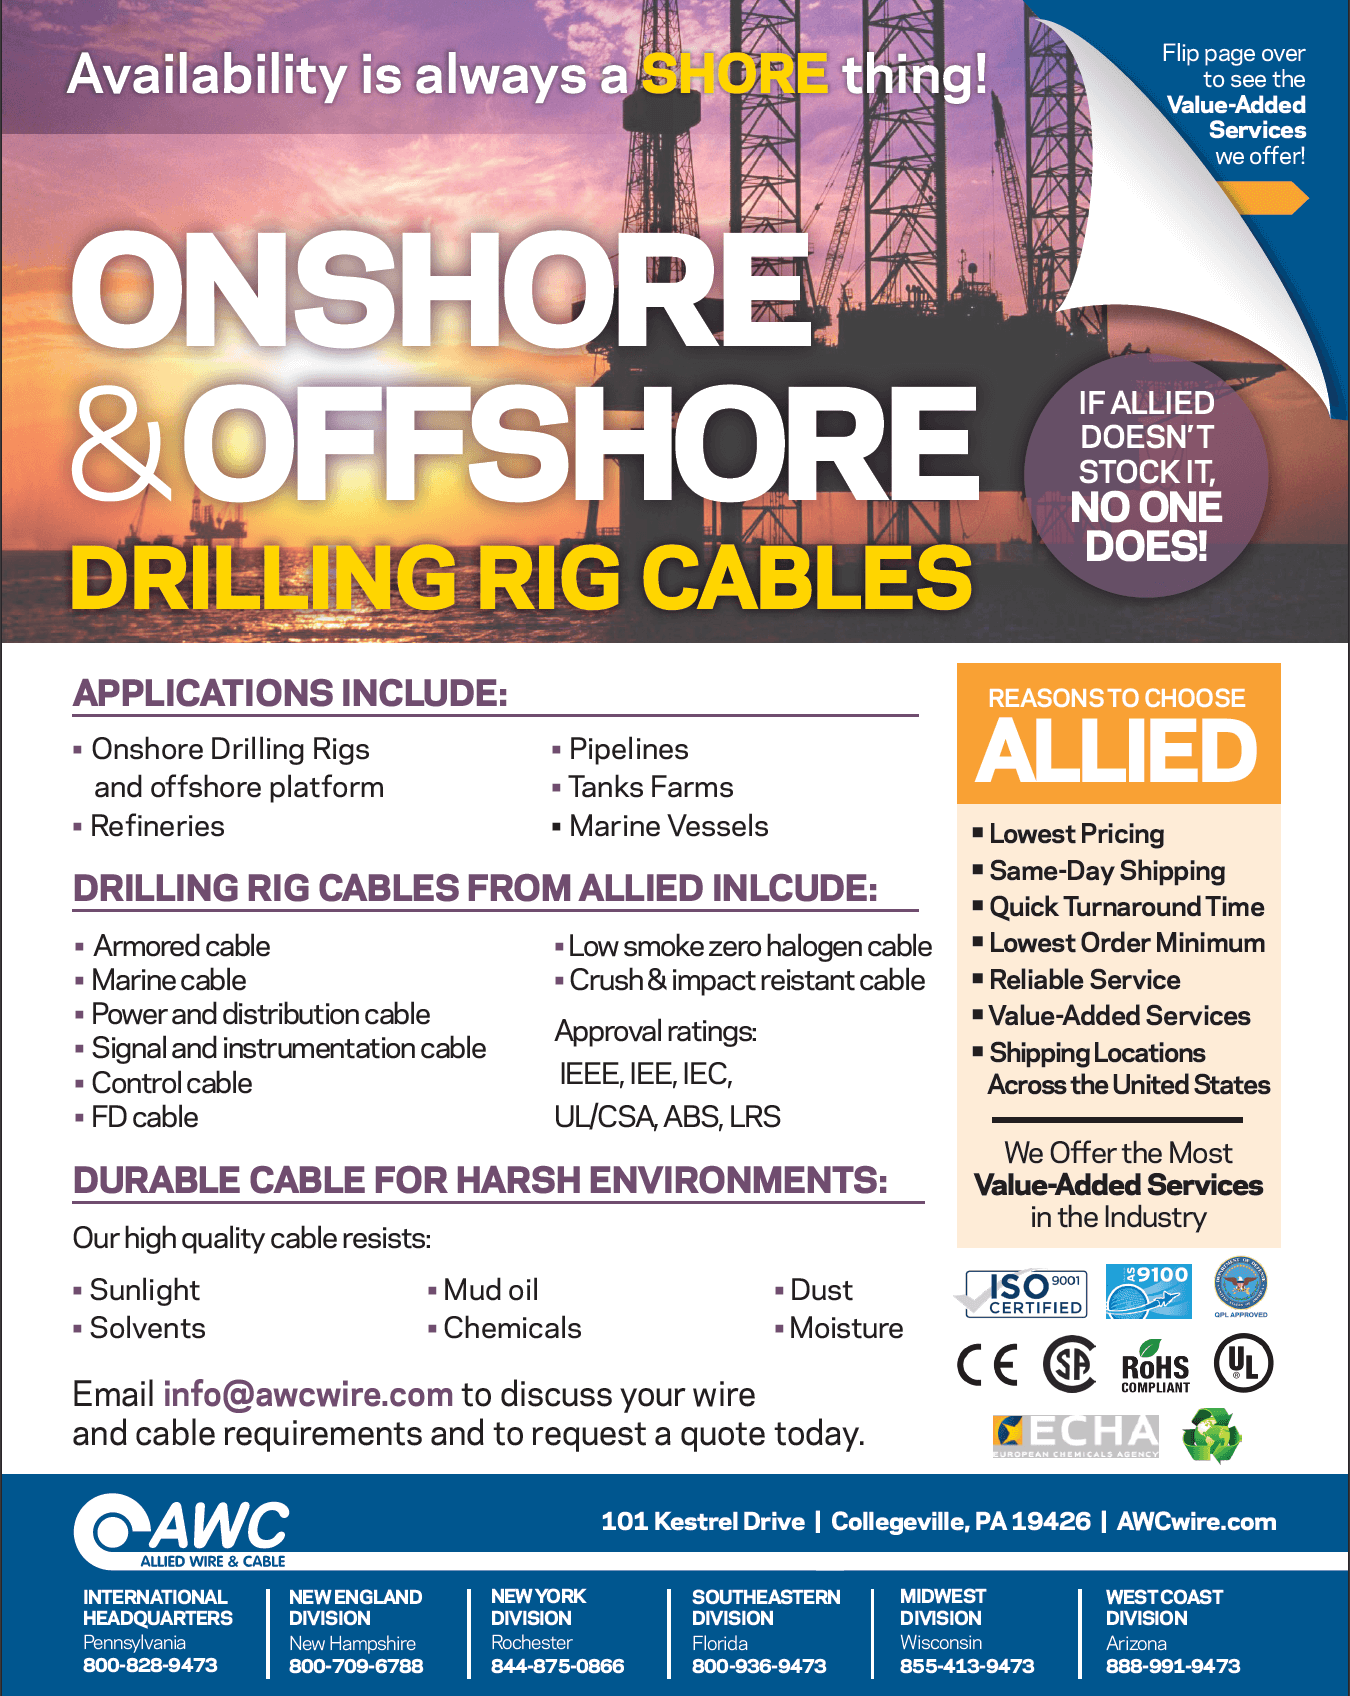 Onshore/Offshore Cable Line Card from Allied Wire & Cable